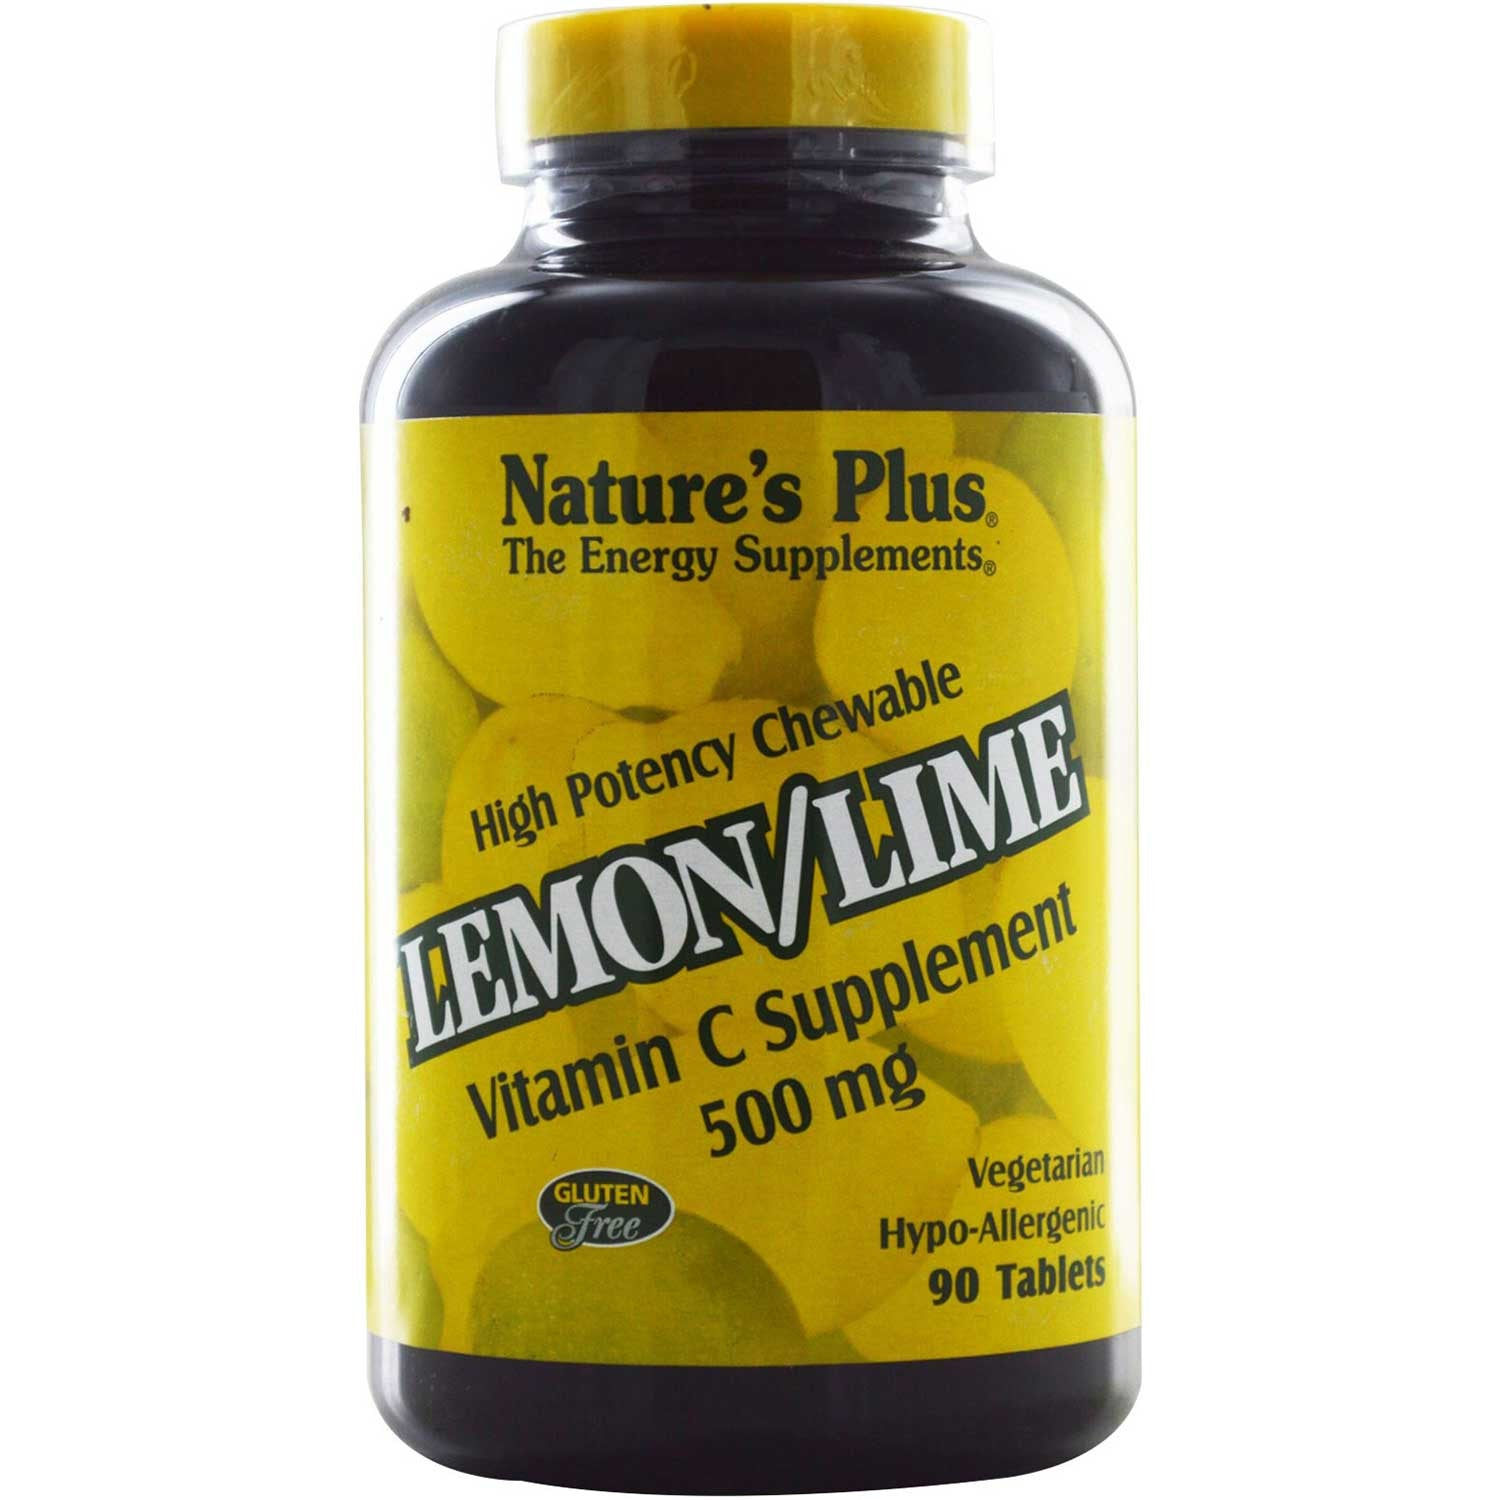 Natures Plus Lemon/Lime Vitamin C 500 mg Chewable, 90 tabs.